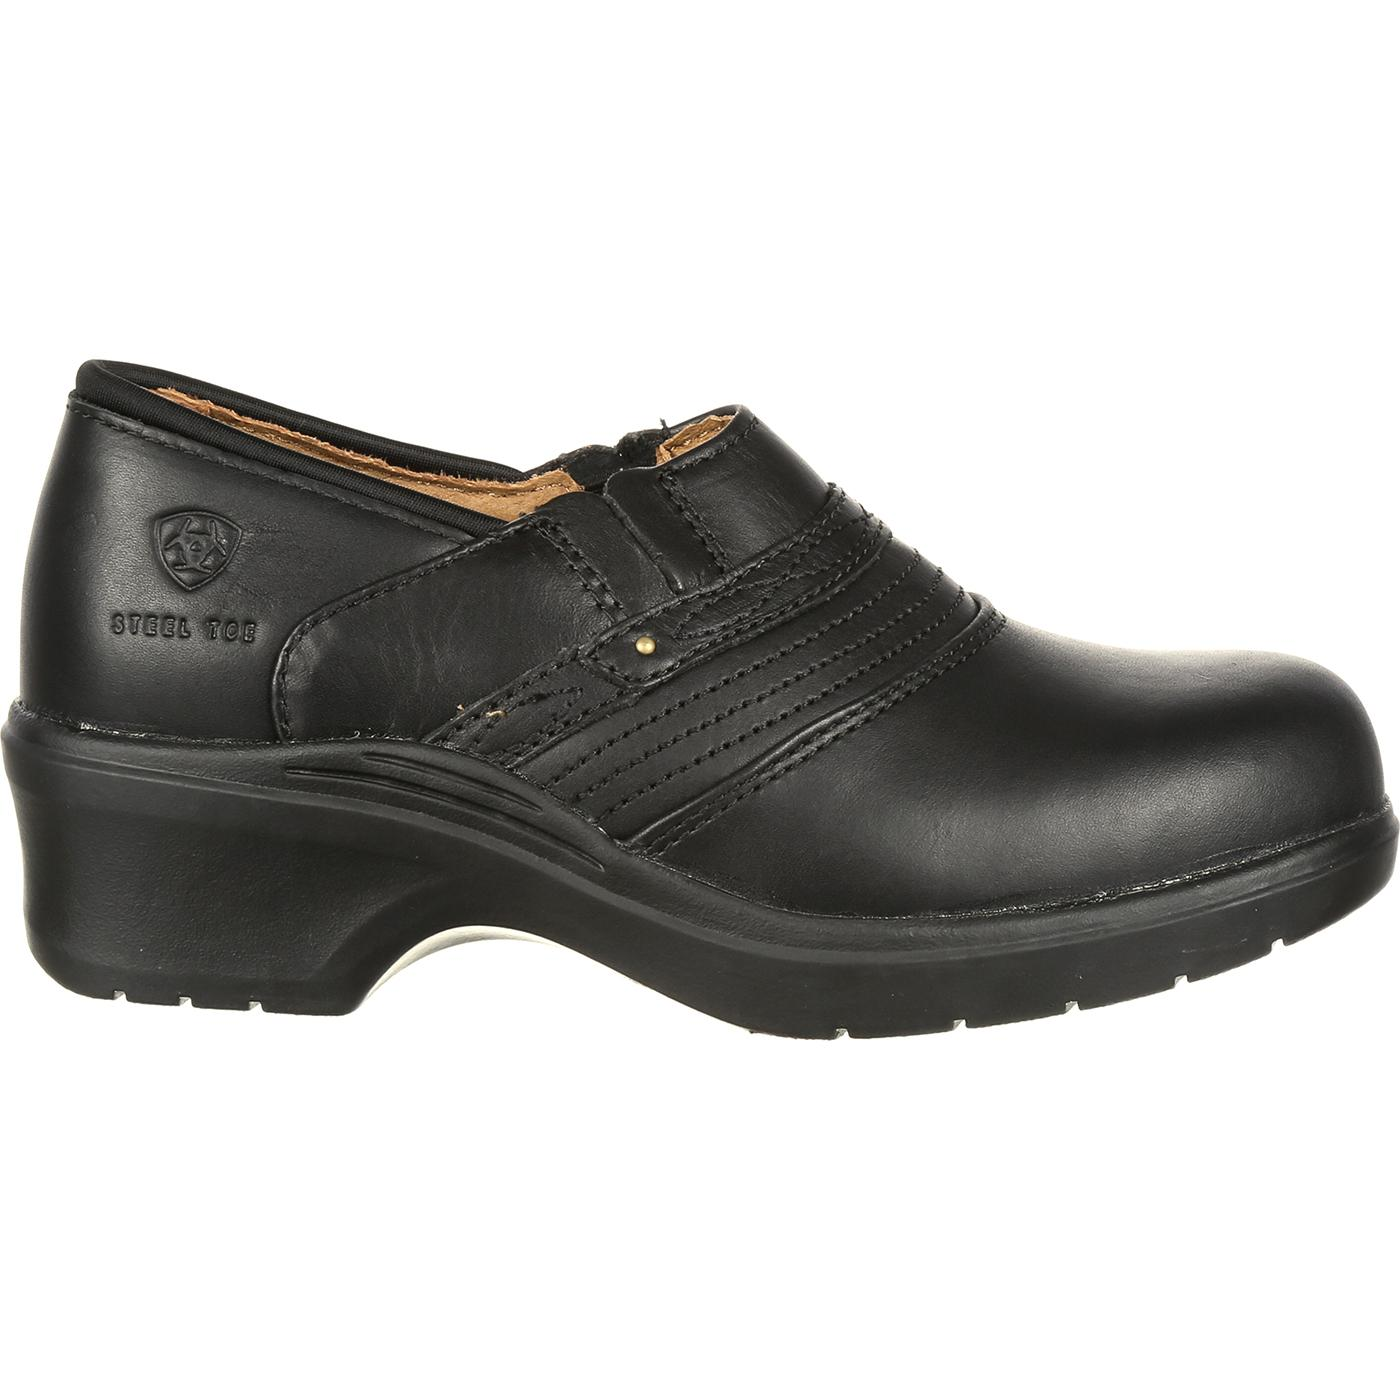 Steel Toe Womens Shoes Size